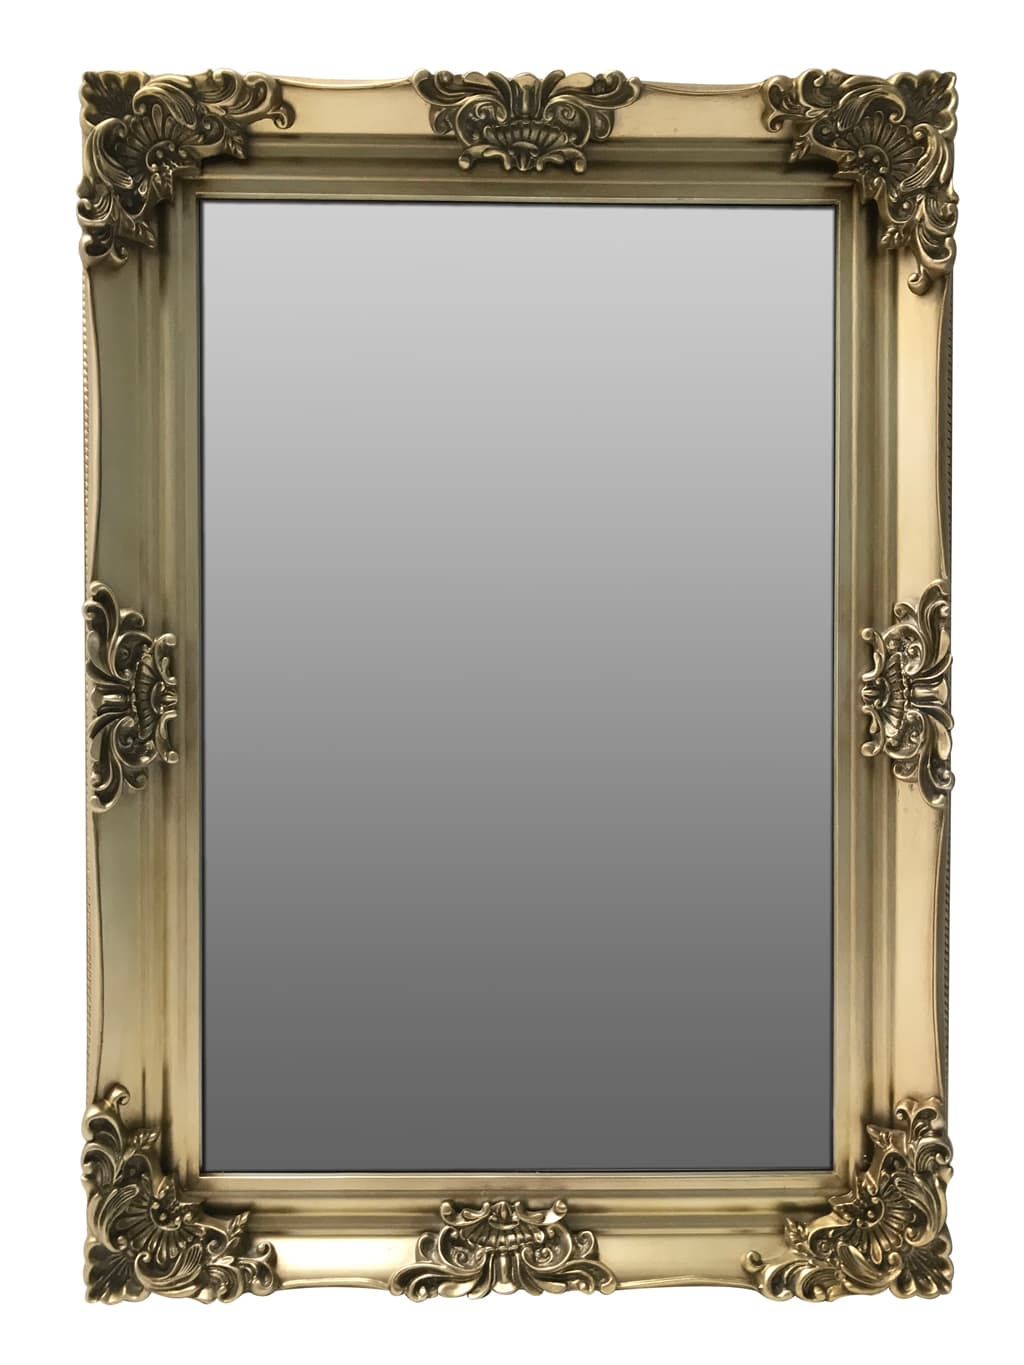 Swept Frame Accent Mirror in Antiqued Gold Finish